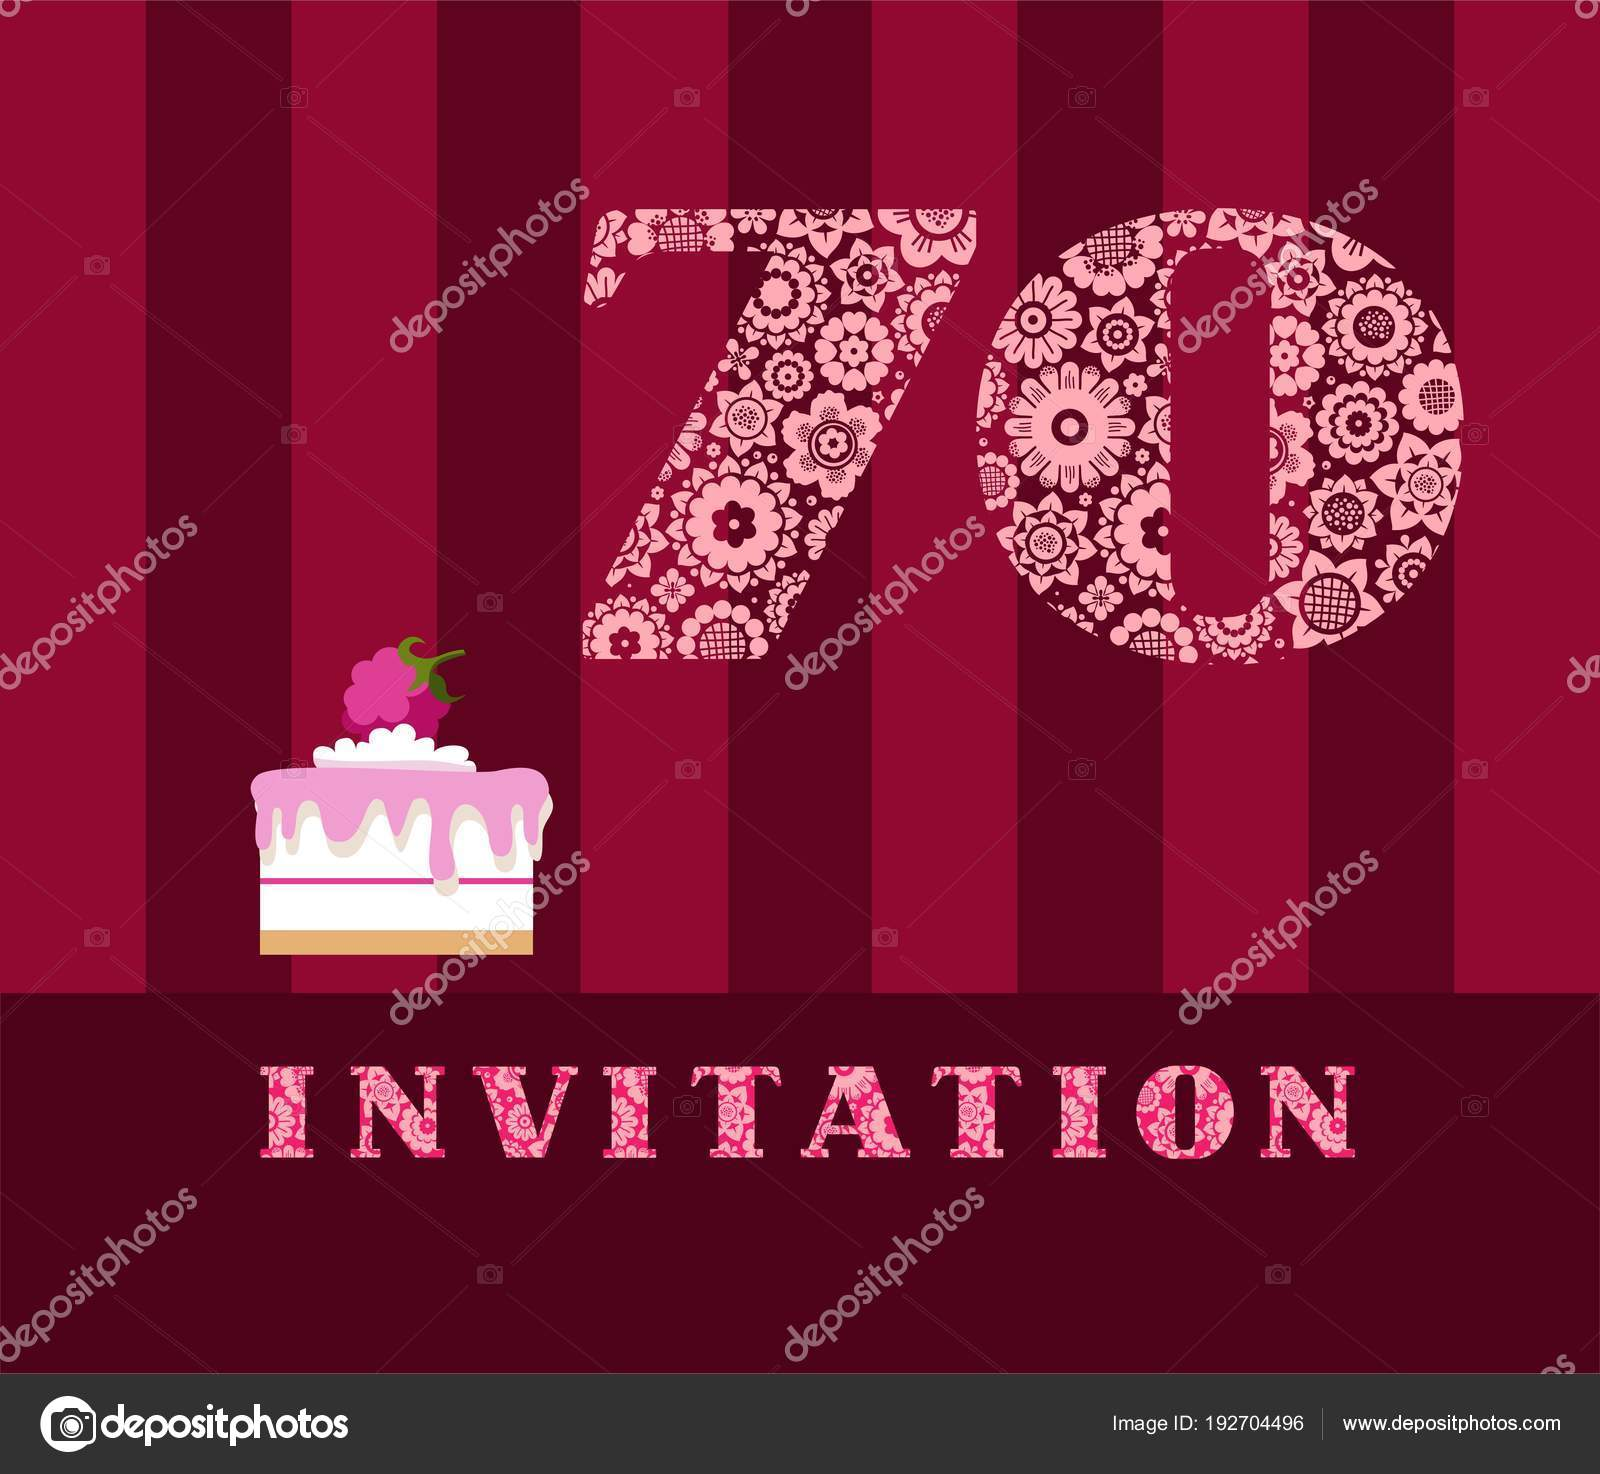 Invitation 70 Years Old Raspberry Pie Vector English The To Birthday Party Wedding Anniversary Color Card Berry Cake With Raspberries